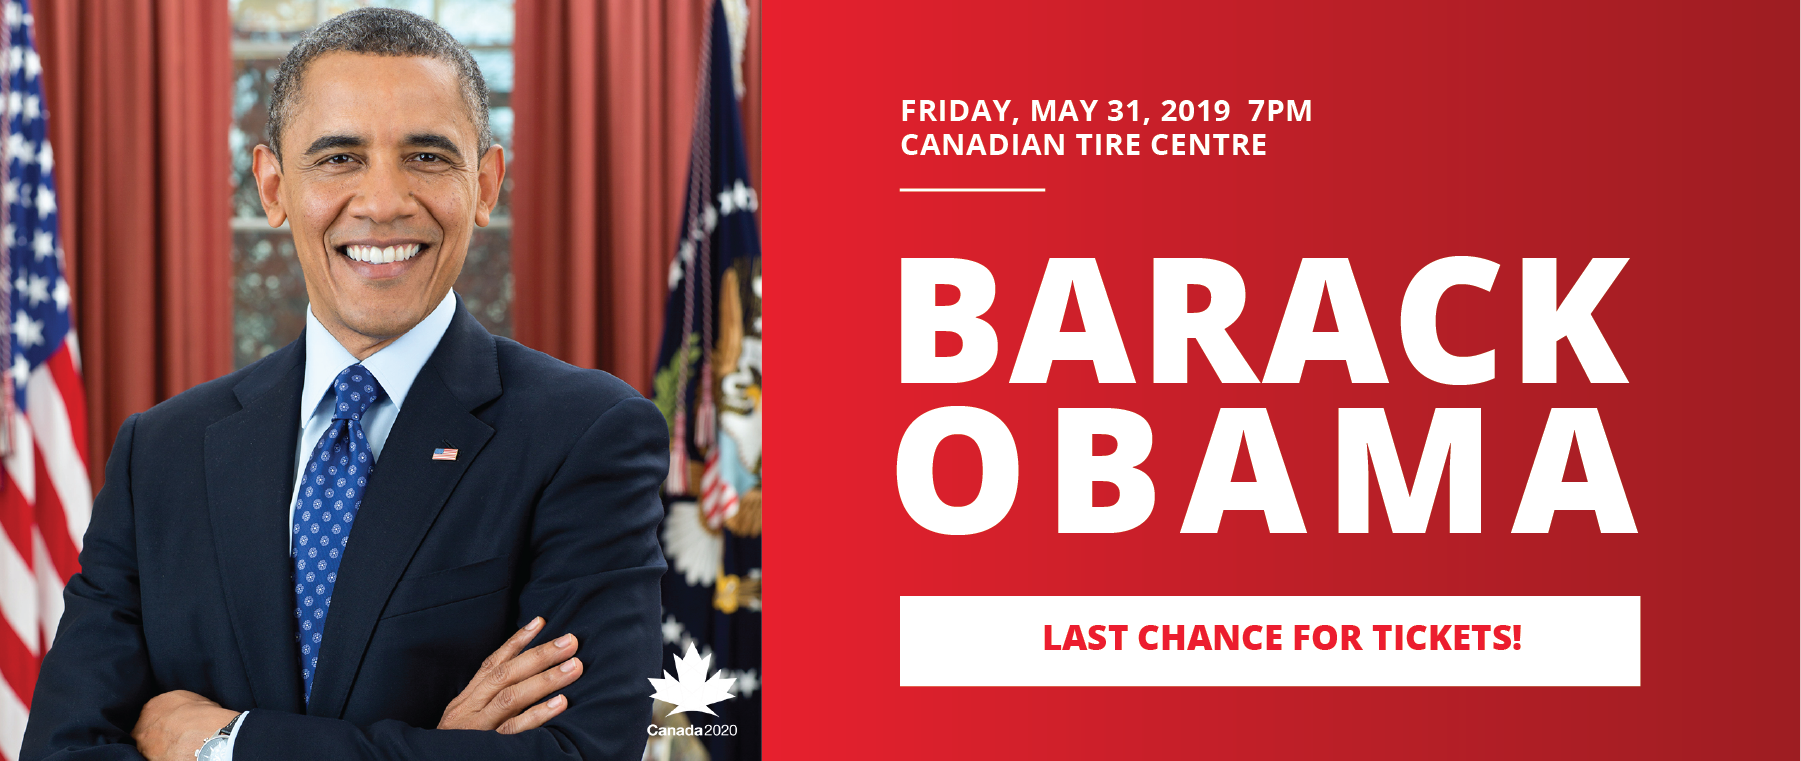 Barack Obama Live in Ottawa on May 31